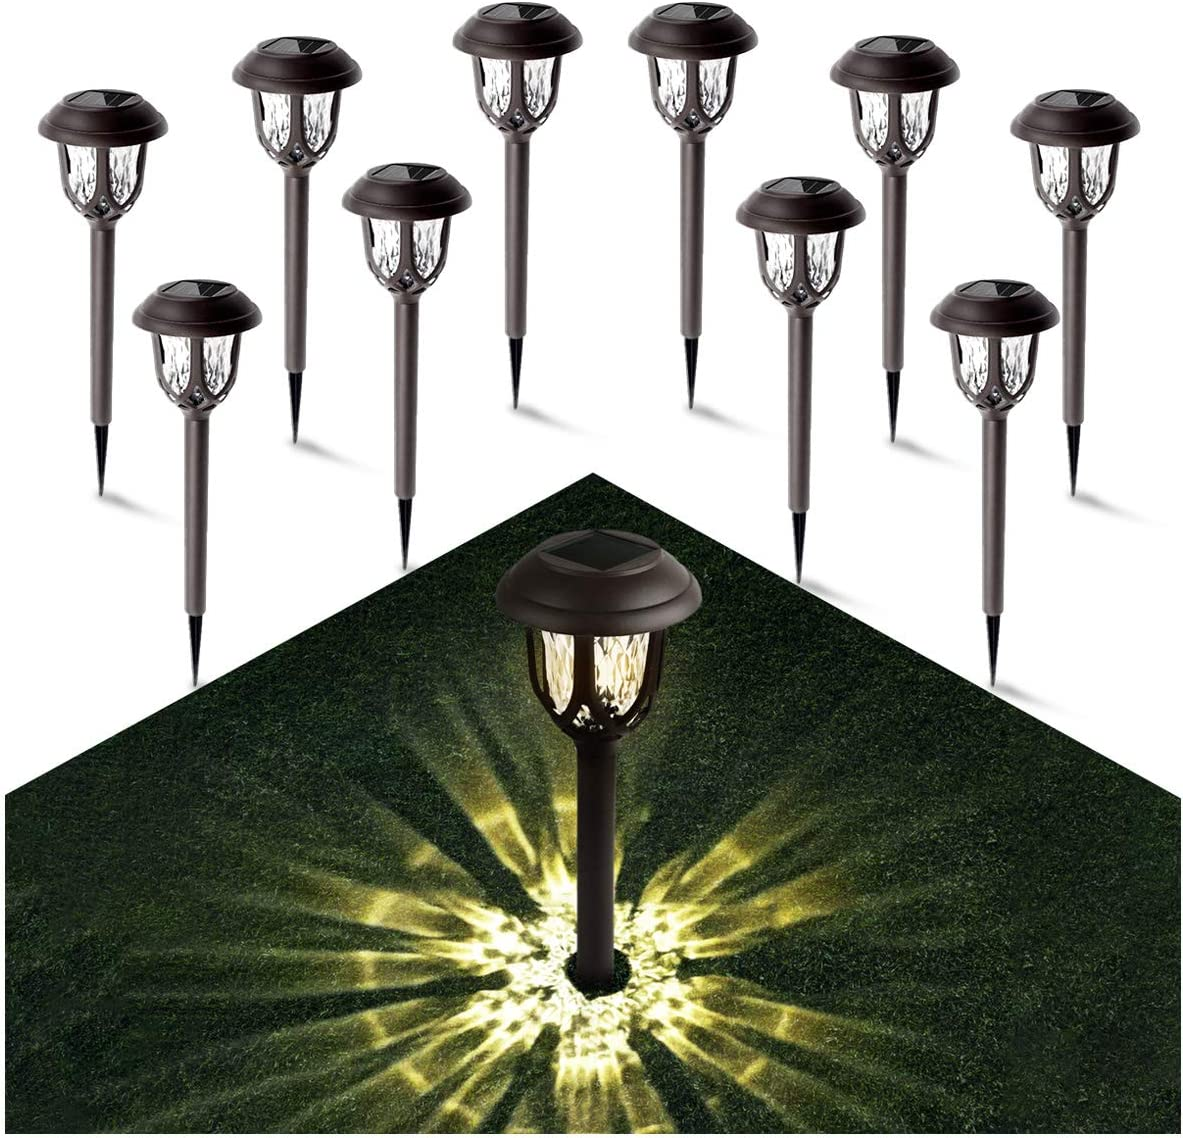 Solar Lights Outdoor Pathway - Gichies Solar Lights Outdoor Solar Graden Light Waterproof Solar Lights Outdoor for Pathway Walkway Garden Yard Landscape Patio 10 Pack (Warm White)